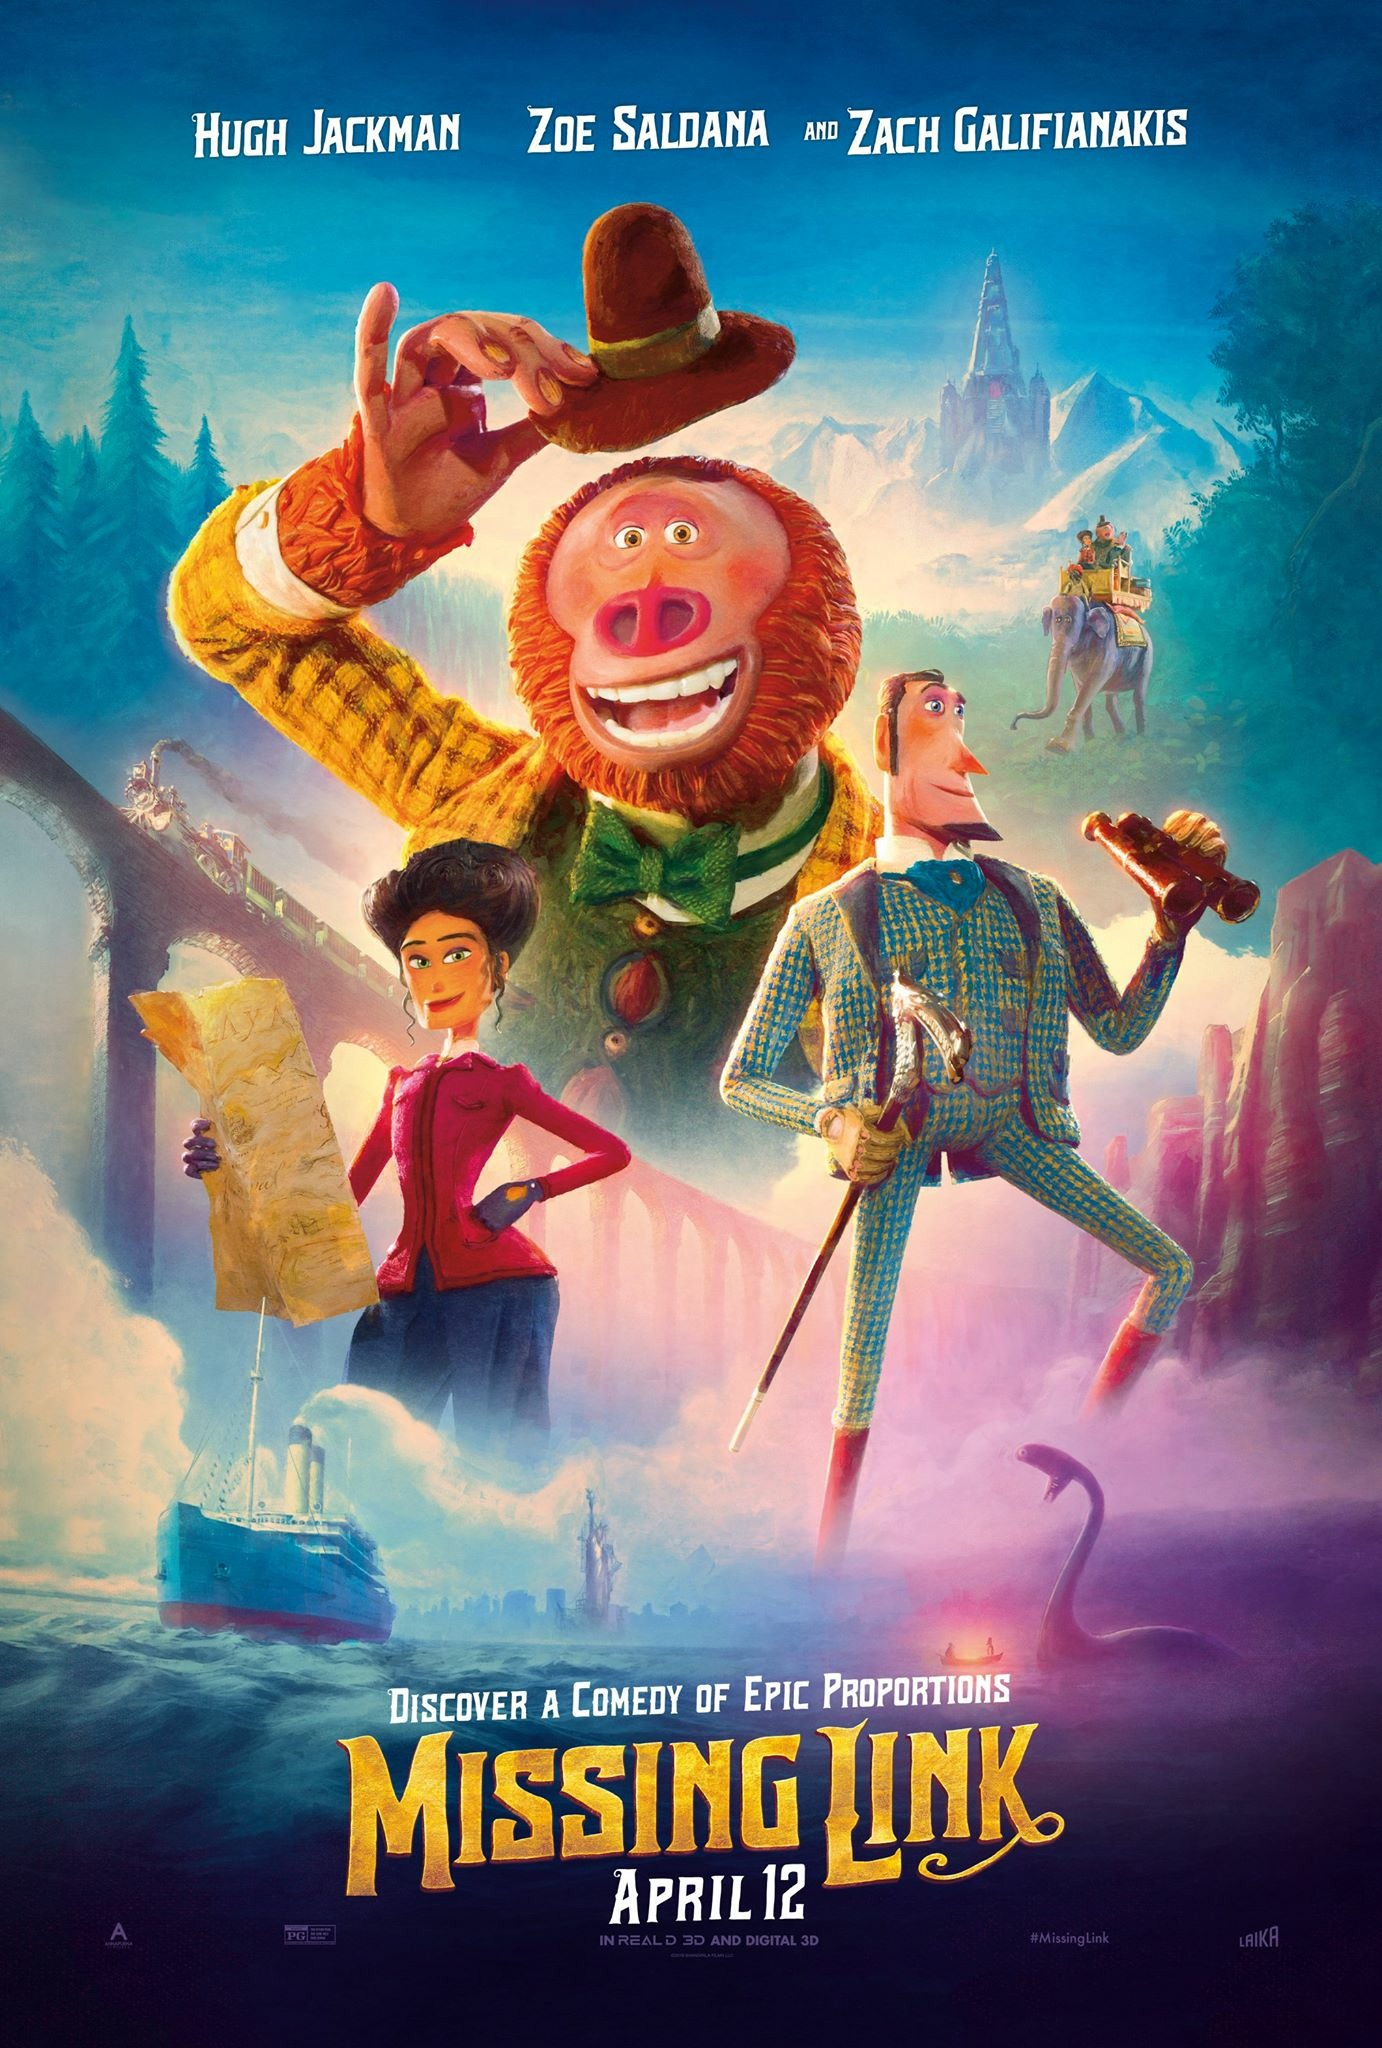 Missing Link film review: a must sasqu-watch family adventure